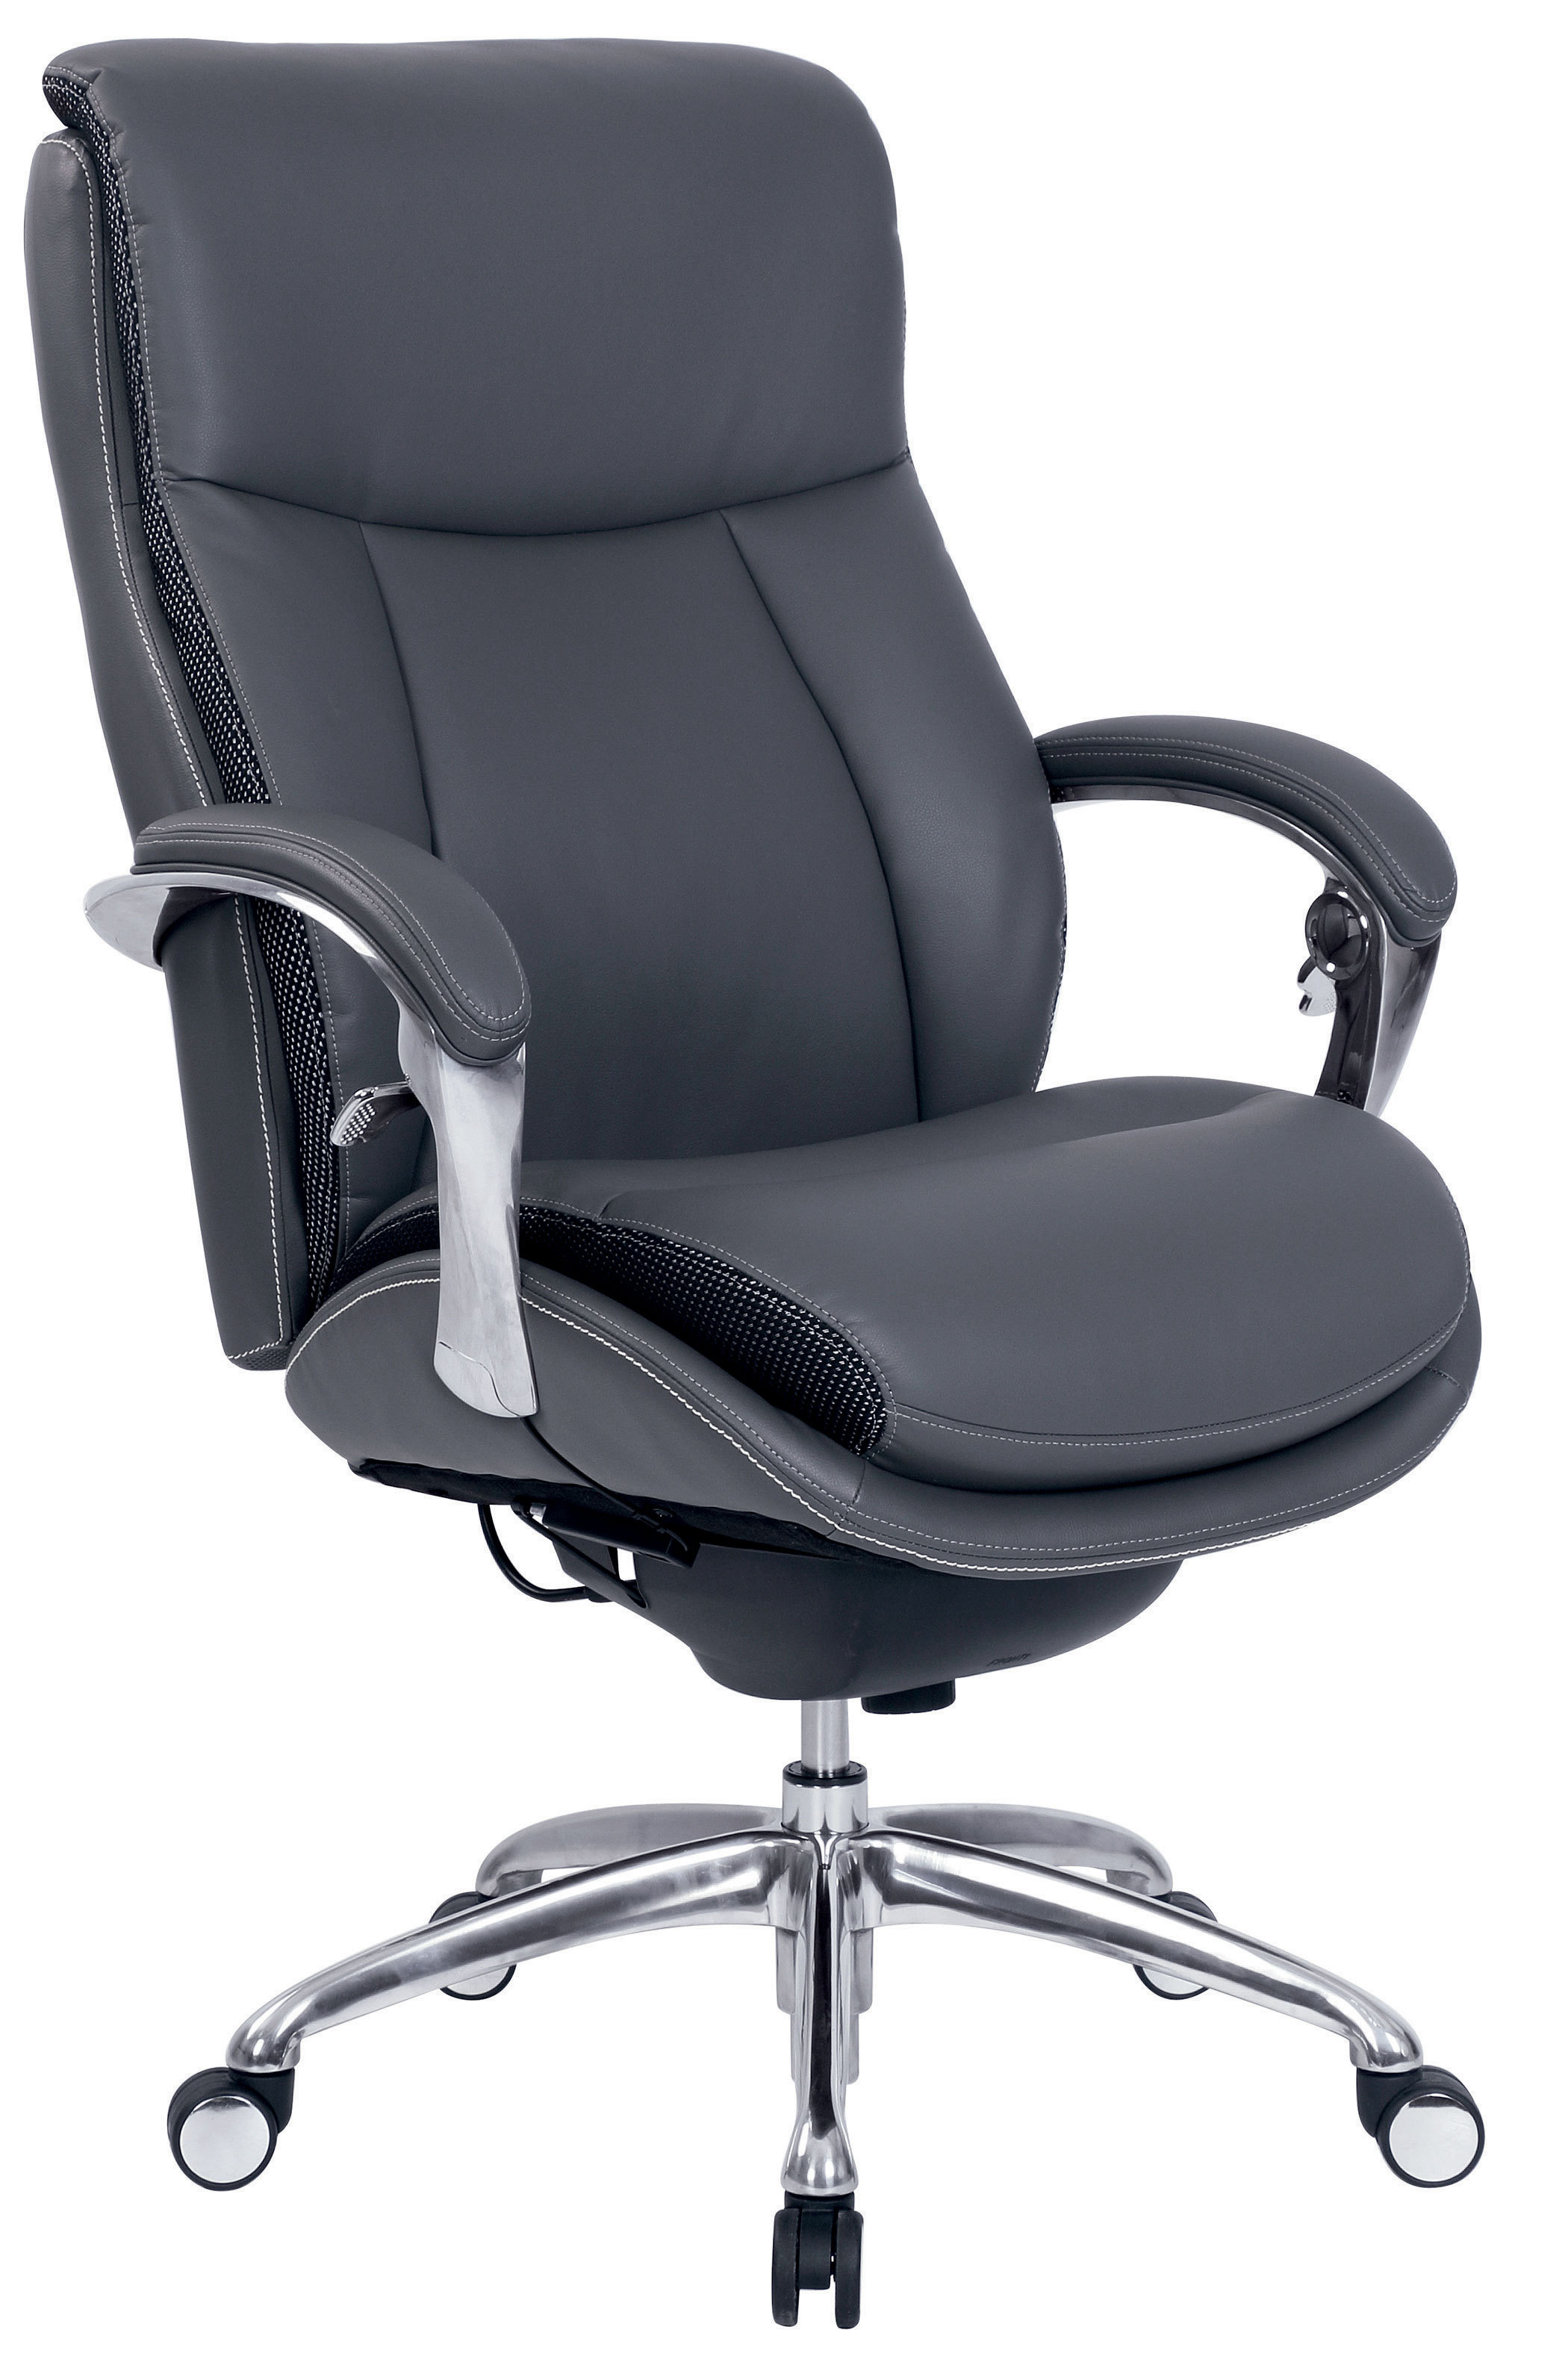 Workpro Chair Office Depot, Inc. Unveils Exclusive Office Seating ...